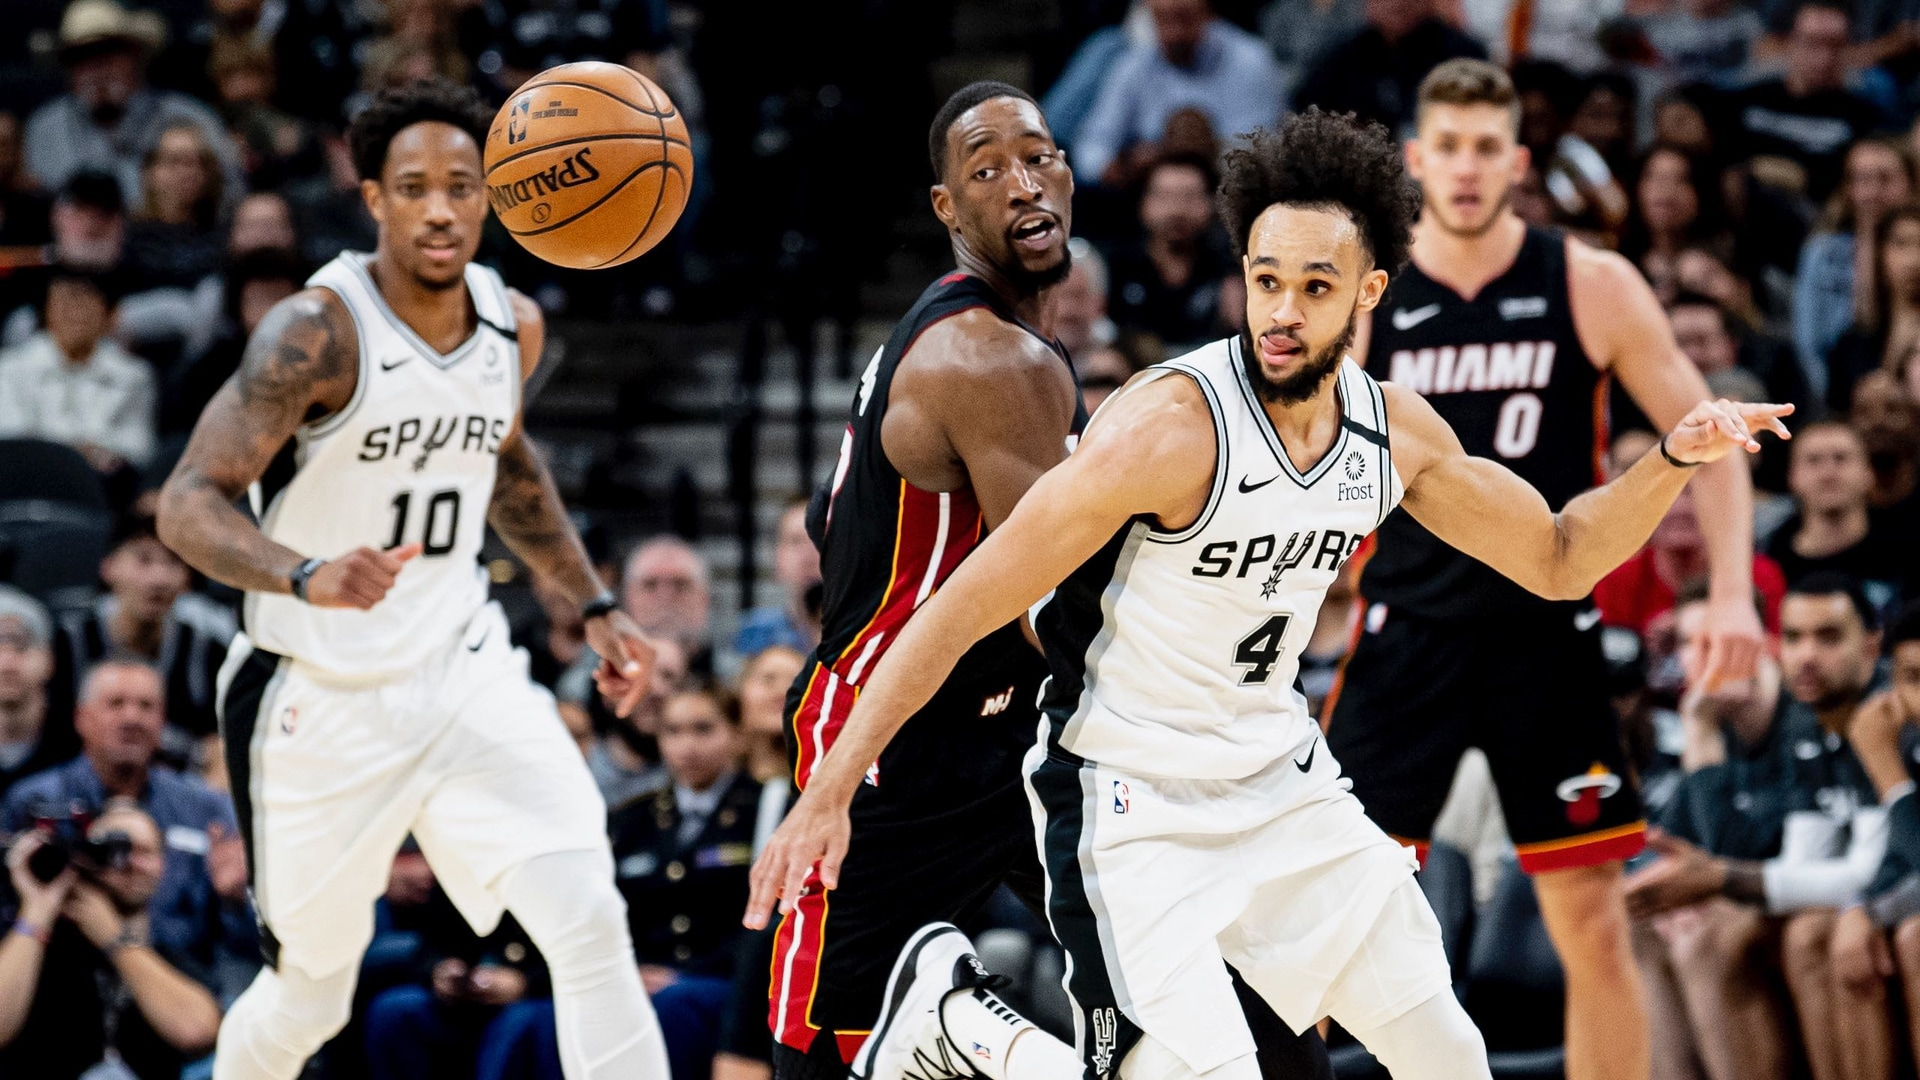 Highlights: Spurs vs. Miami Heat 1/19